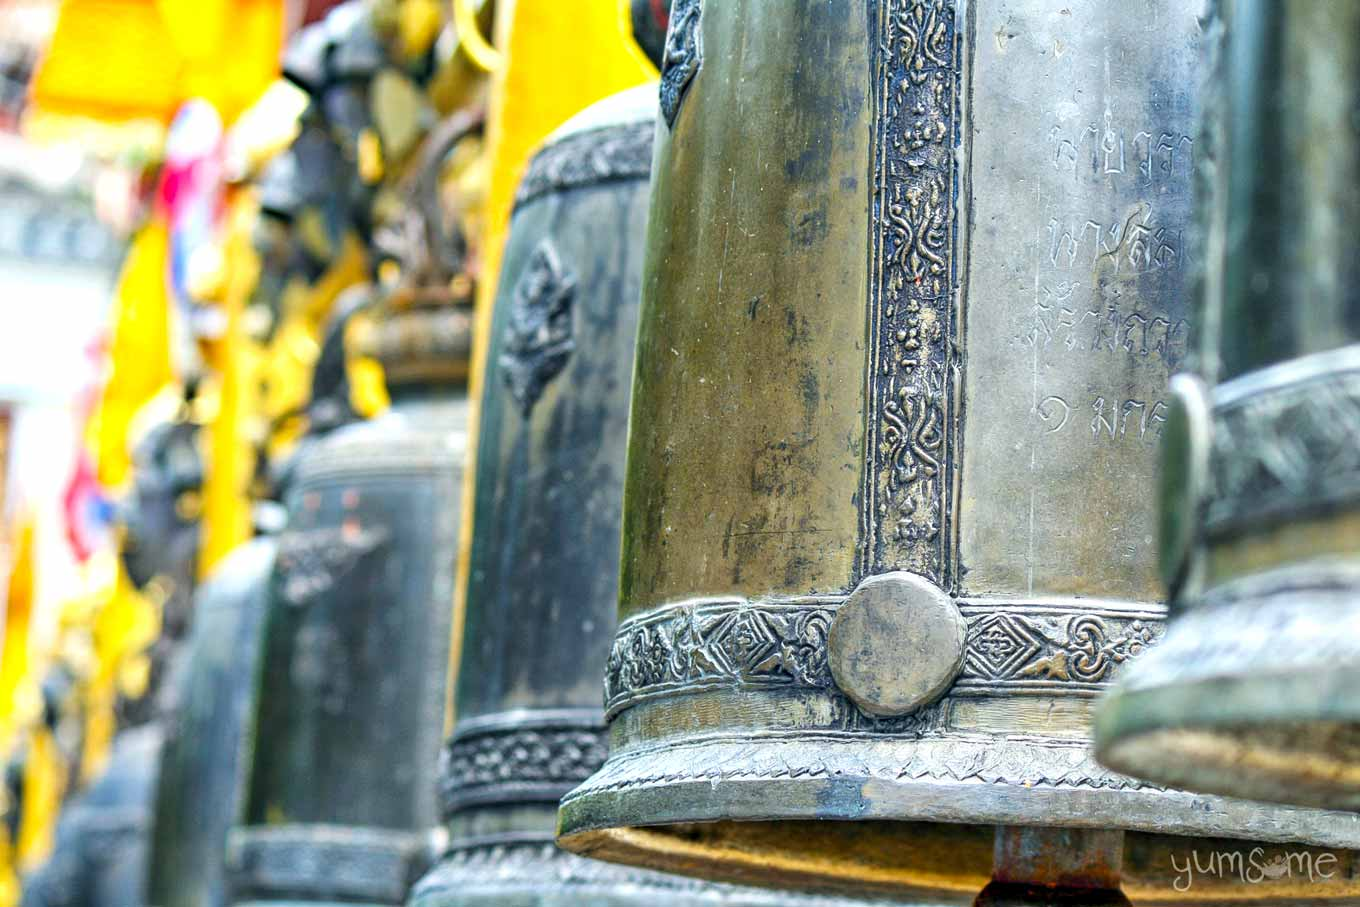 Closeup of some of the temple bells at Wat Doi Suthep, showing an inscription on one of them.